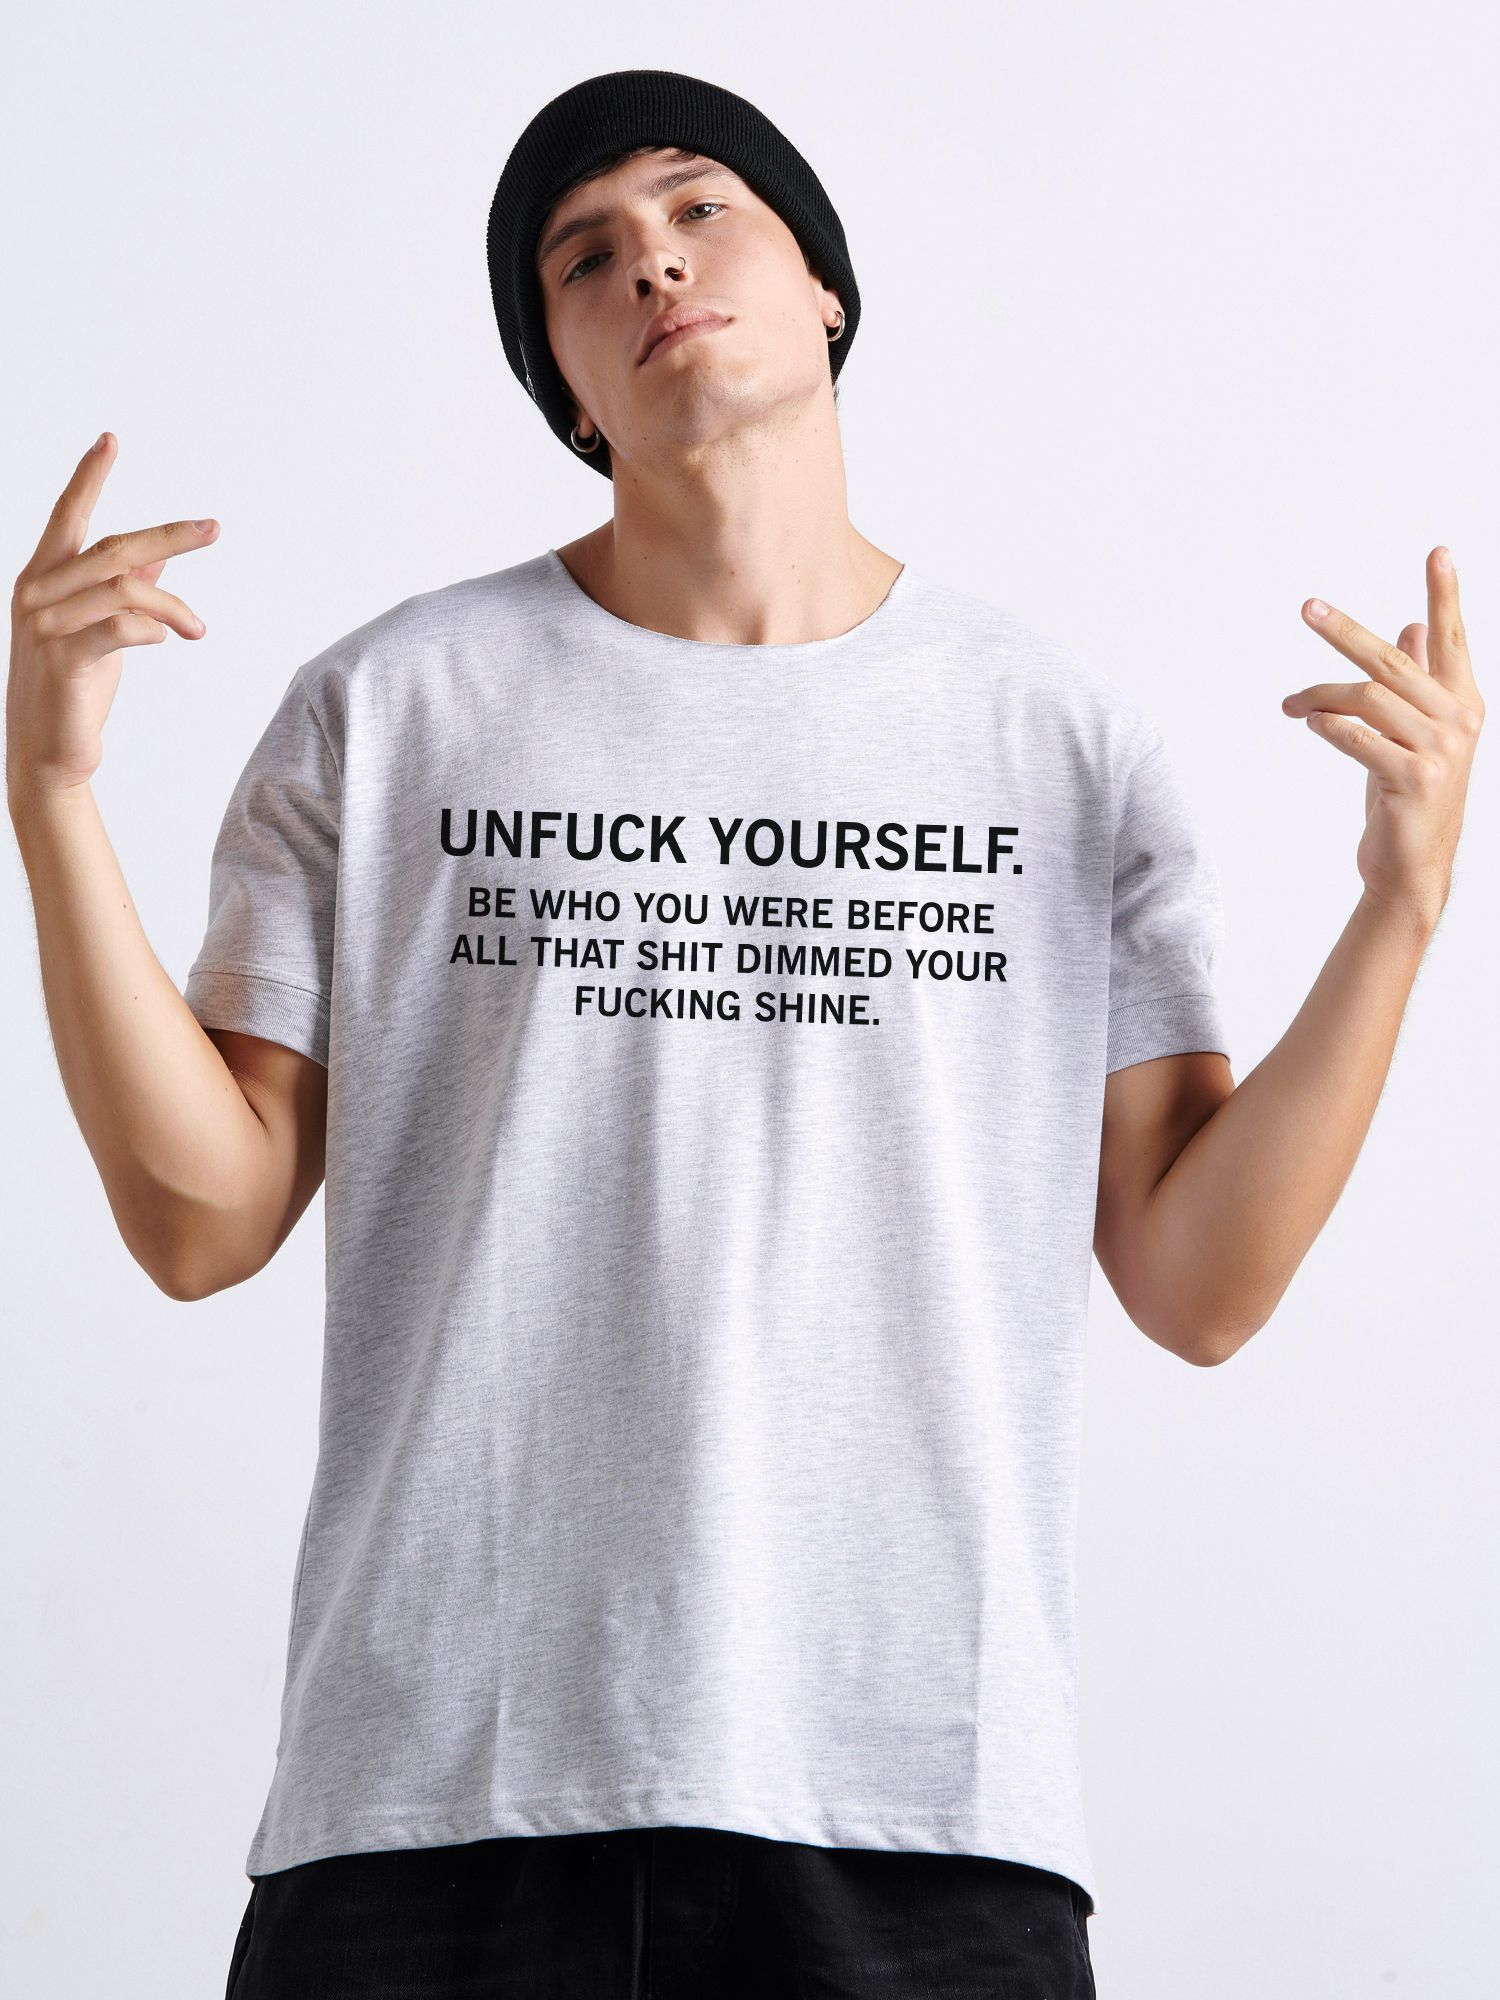 UNF* YOURSELF T-shirt